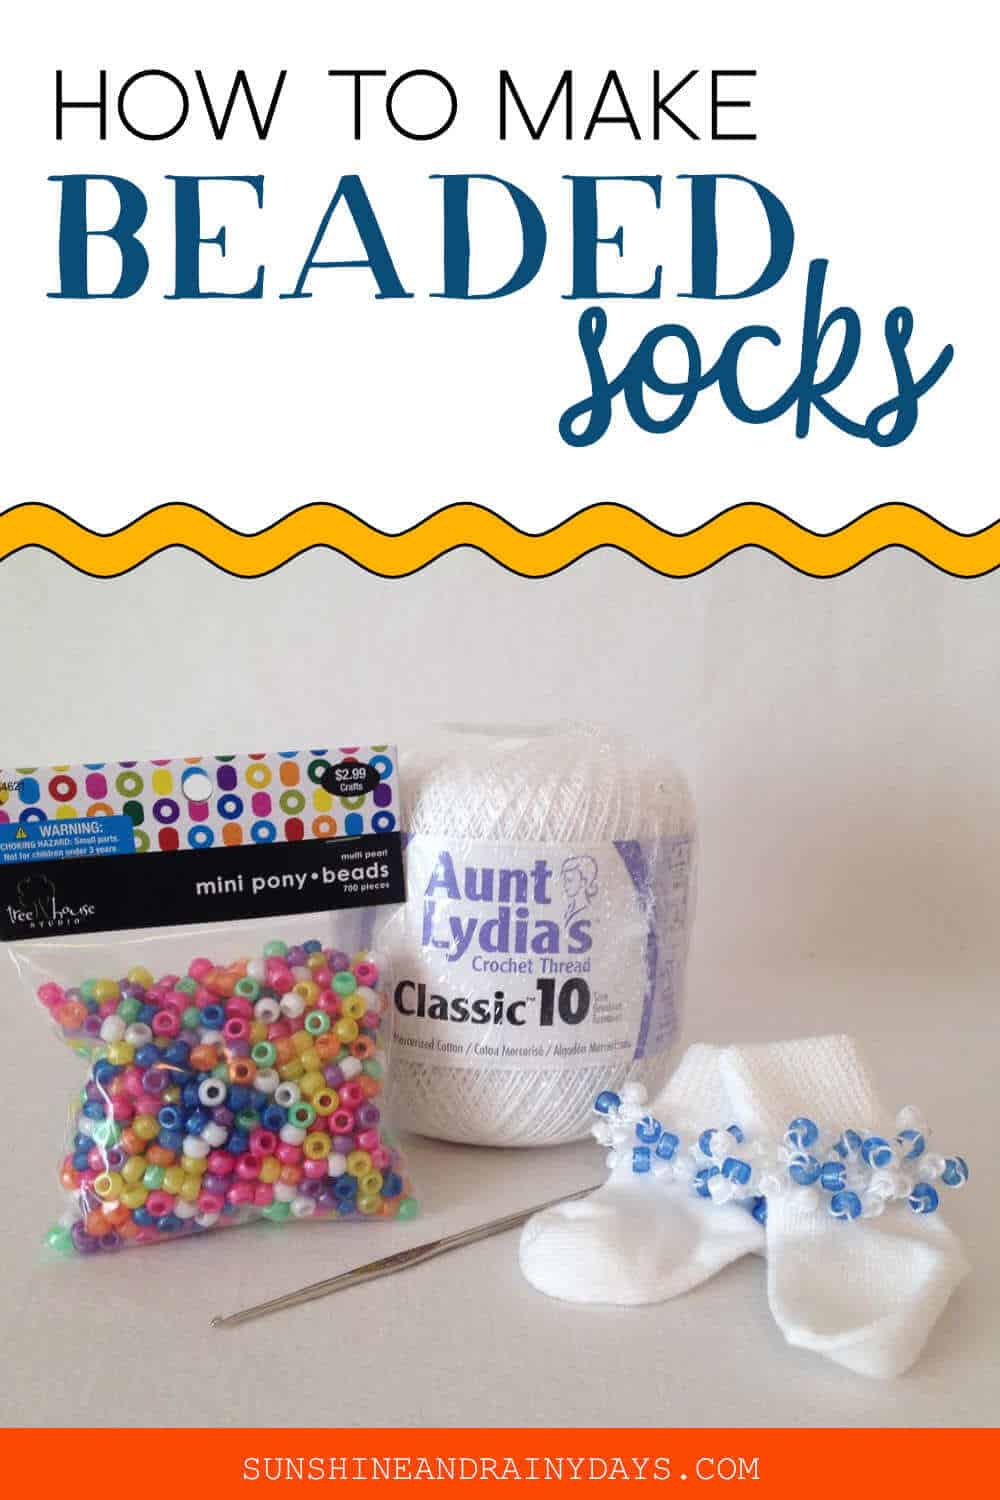 Image of beaded socks, crochet thread, and beads with the words: How To Make Beaded Socks